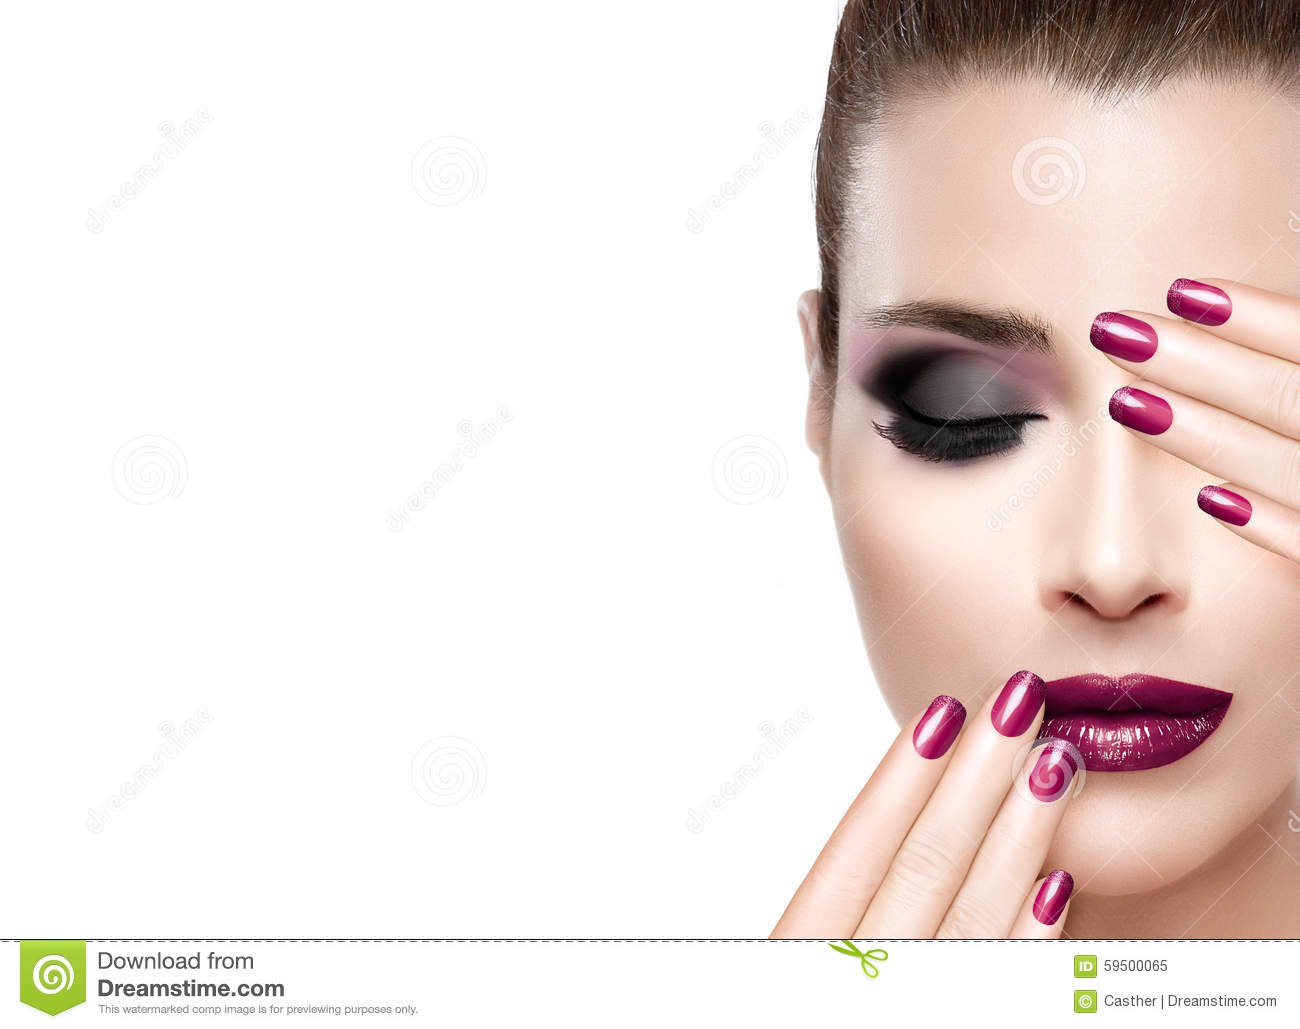 beauty-makeup-concept-luxury-nails-make-up-beautiful-fashion-model-woman-hands-face-covering-half-mouth-one-eye-59500065.jpg